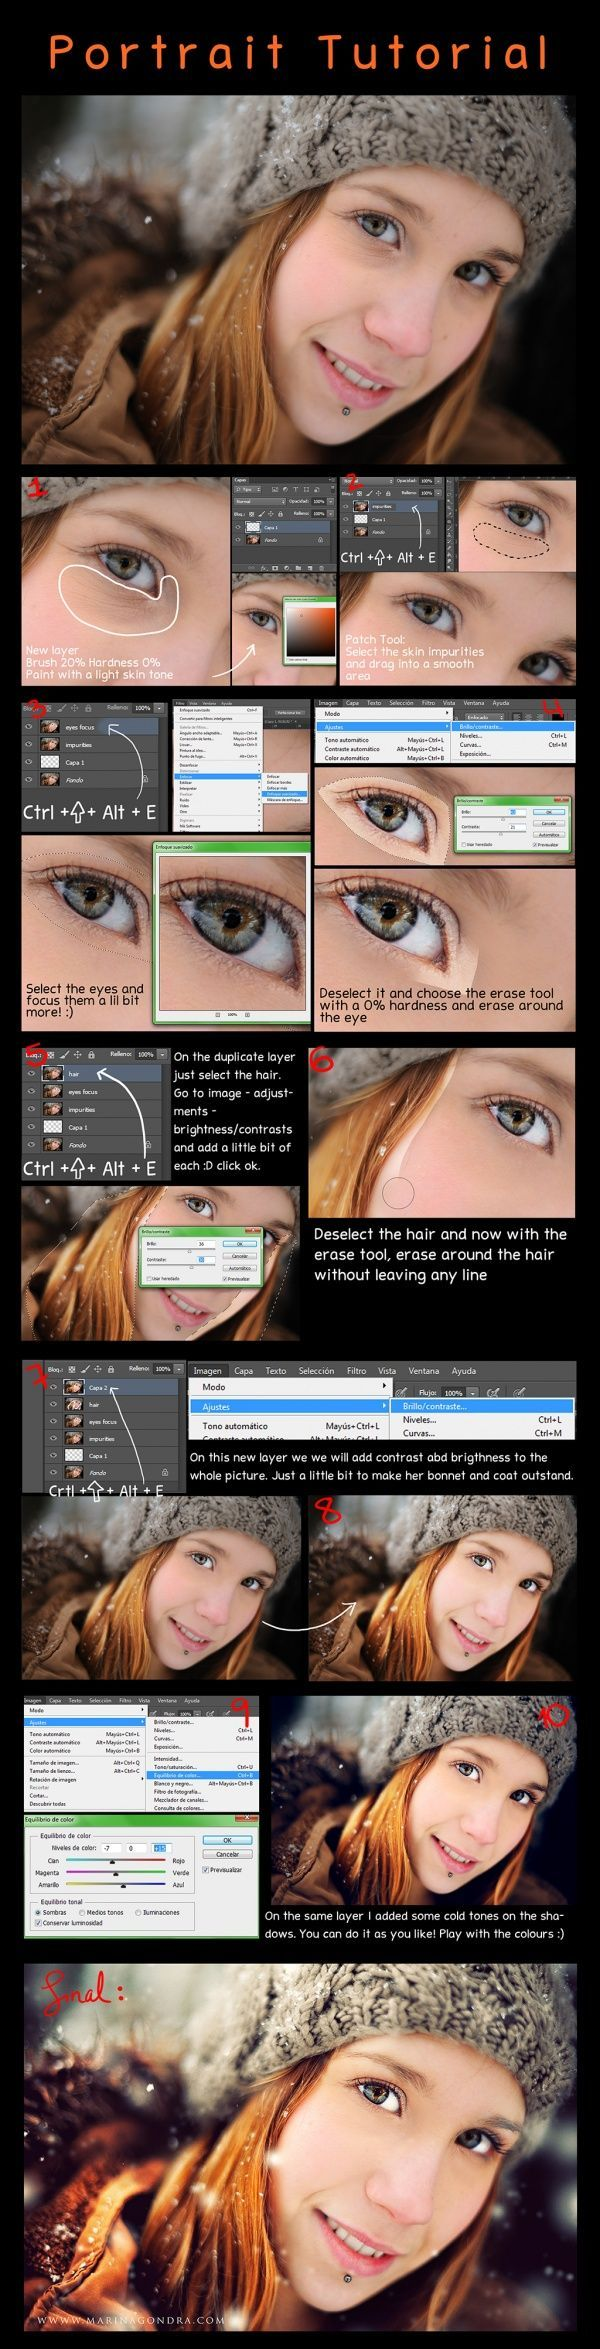 Photoshop Tutorial: How to retouch a portrait!  Tutorial de Photoshop: Cómo retocar un retrato!